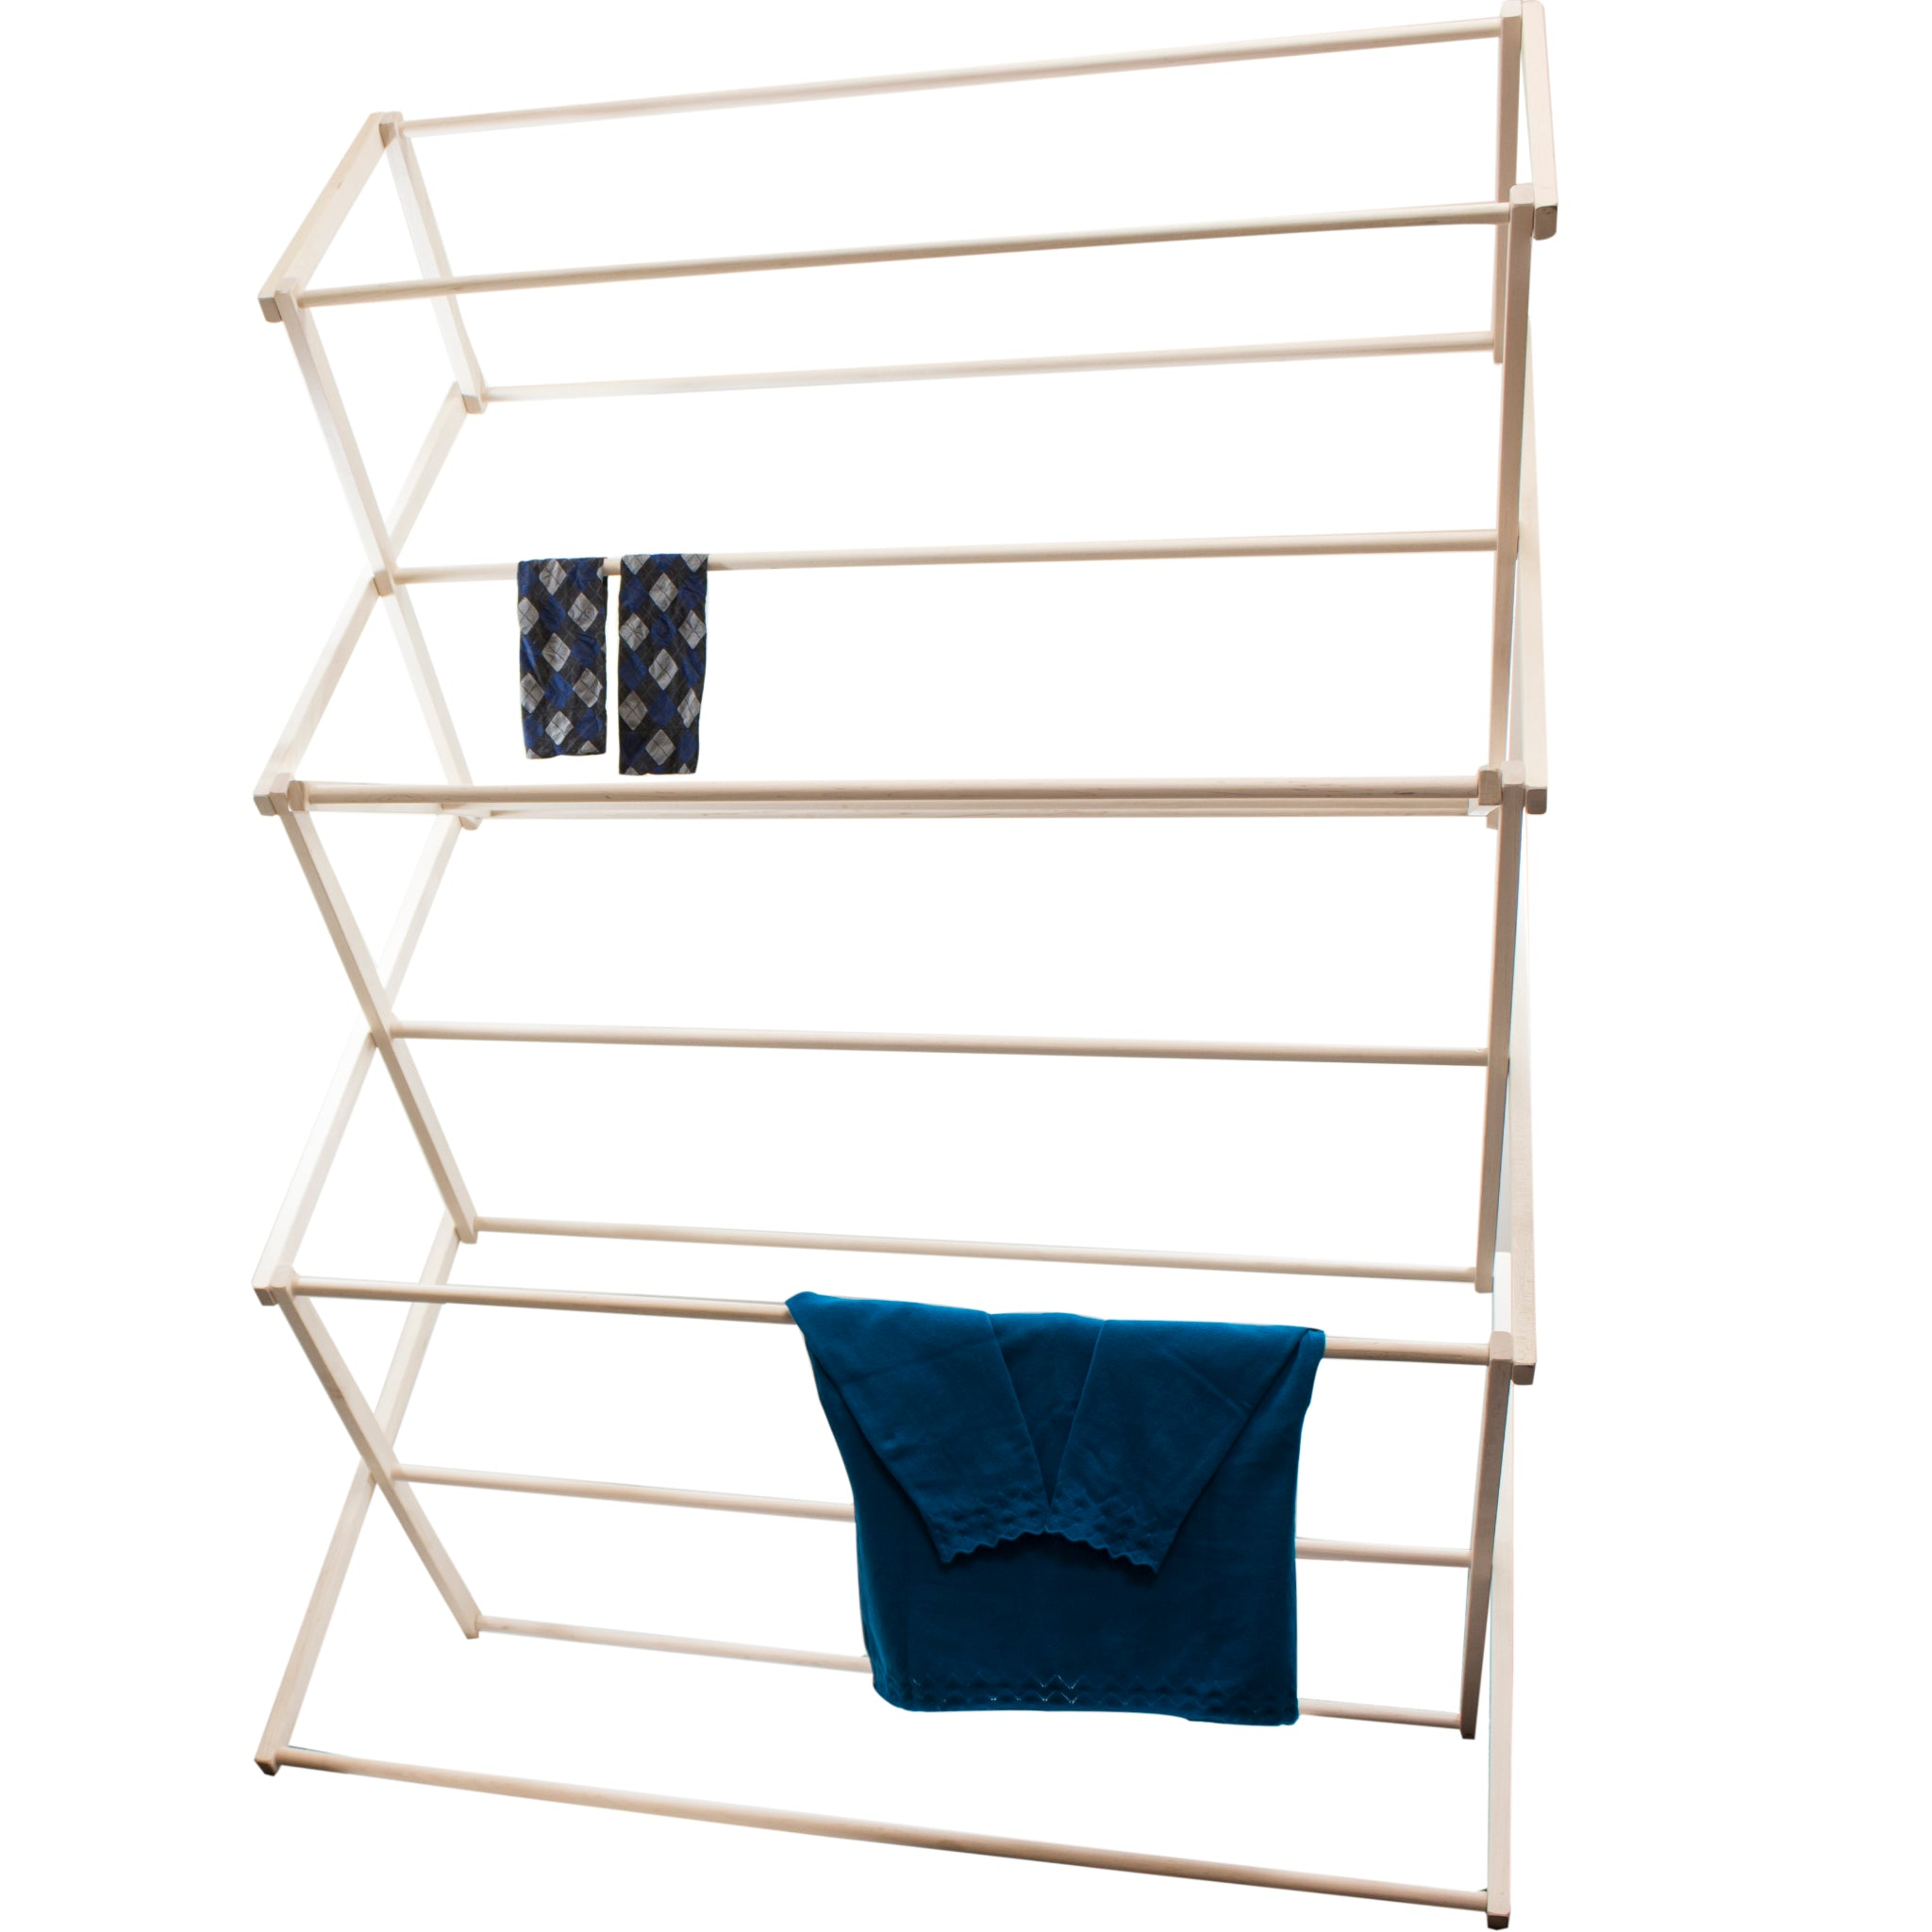 Shop For Wooden Clothes Drying Racks Goods Store Online